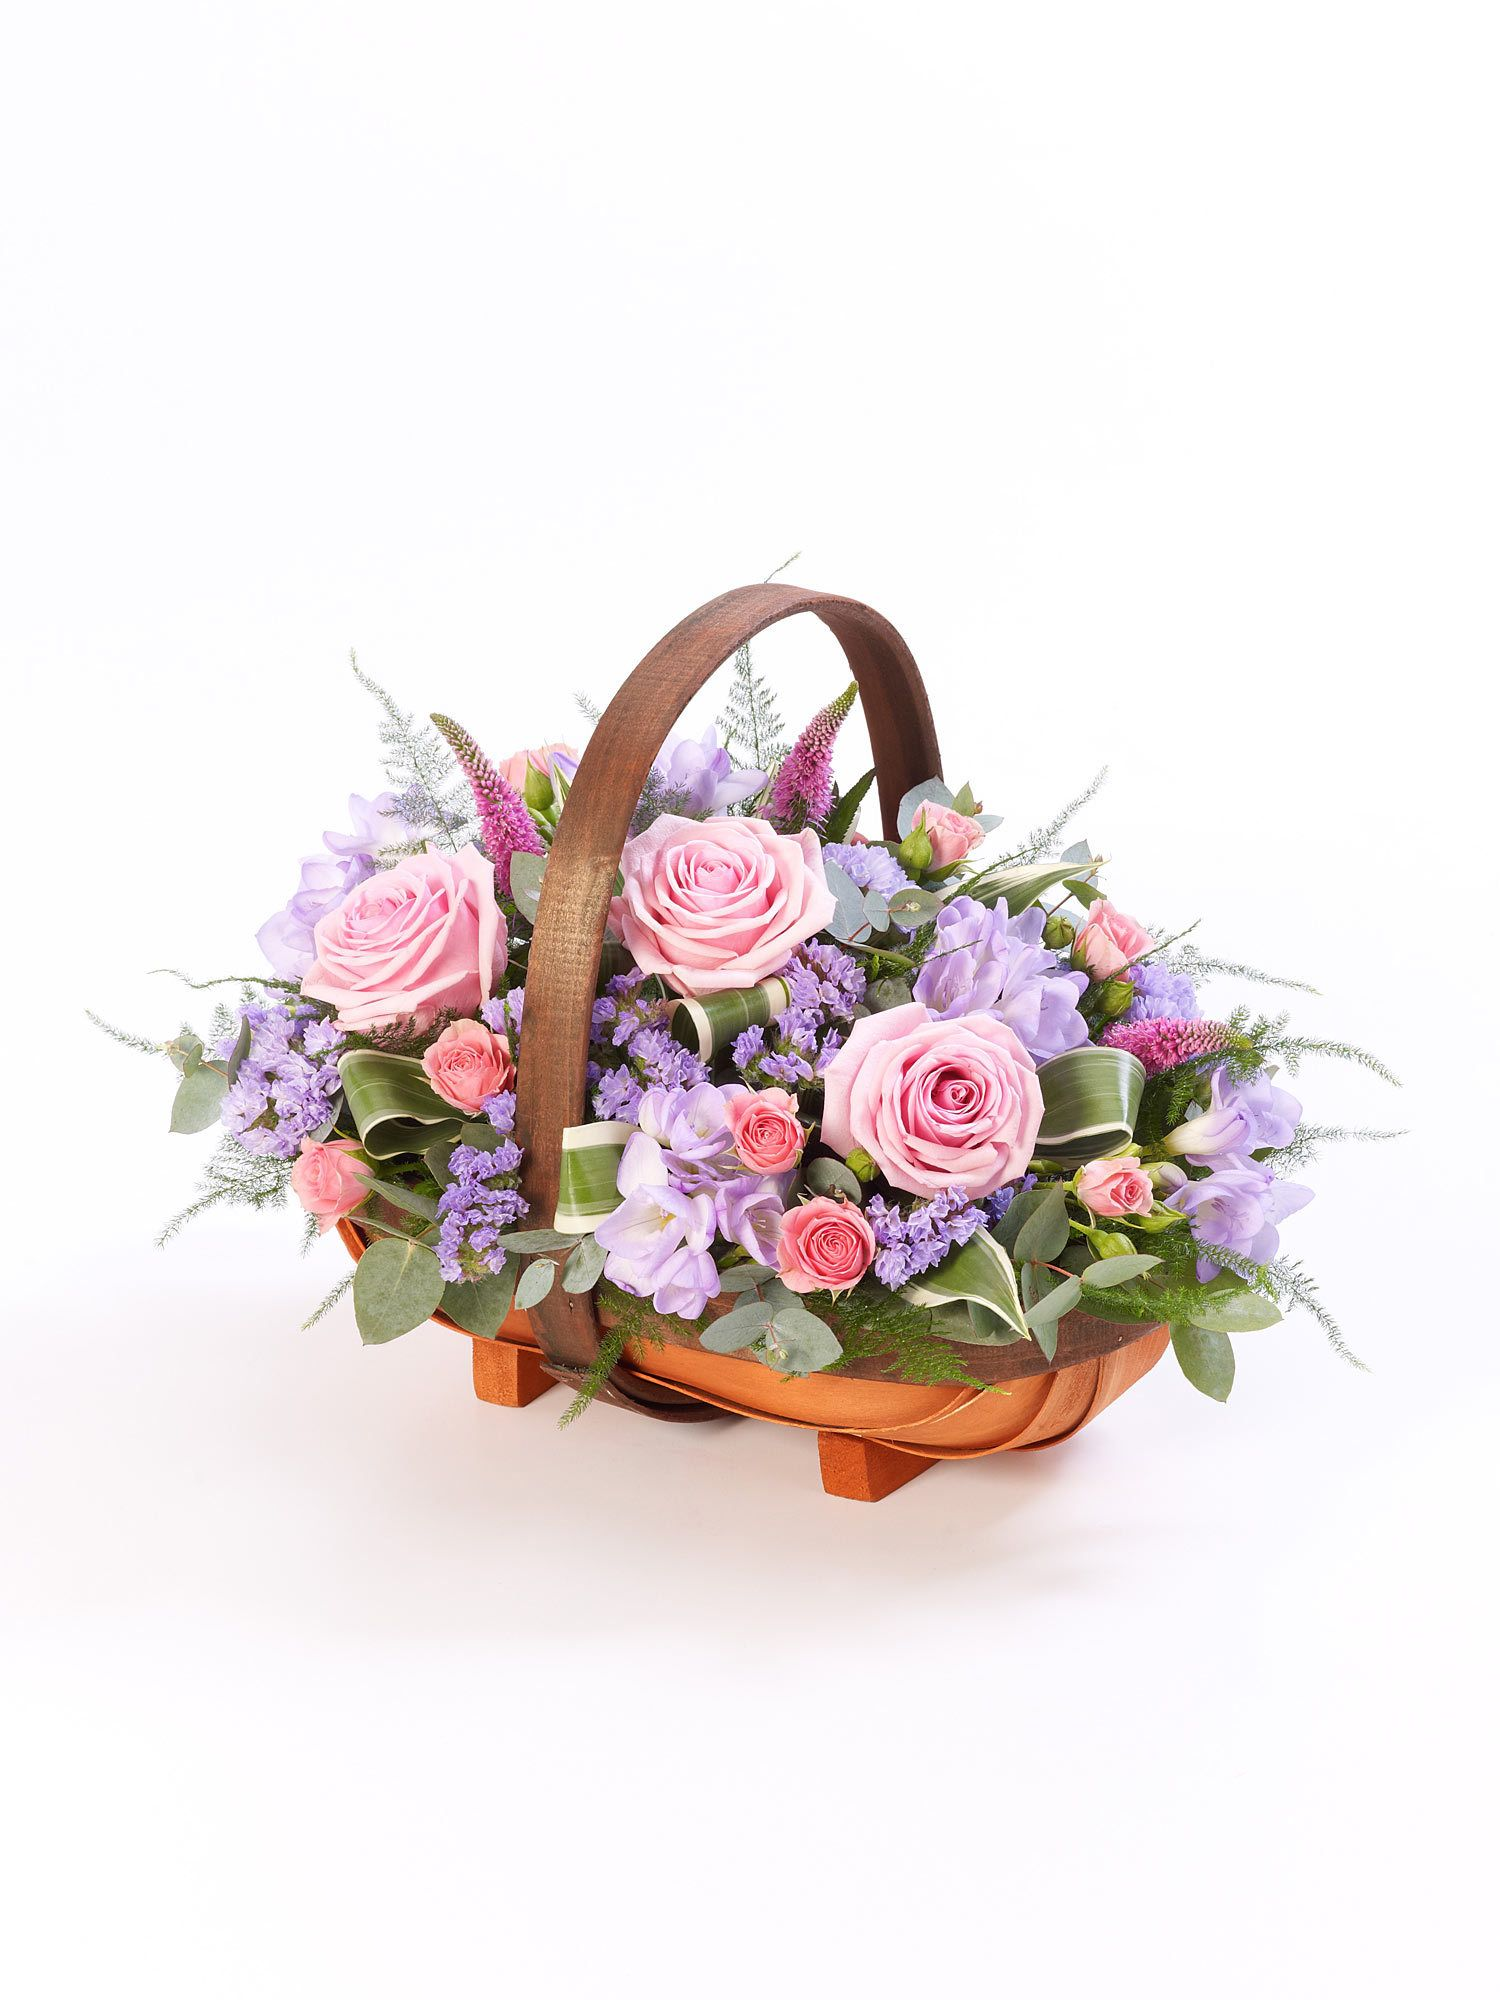 Mixed Basket Pink and Lilac Interflora Funeral